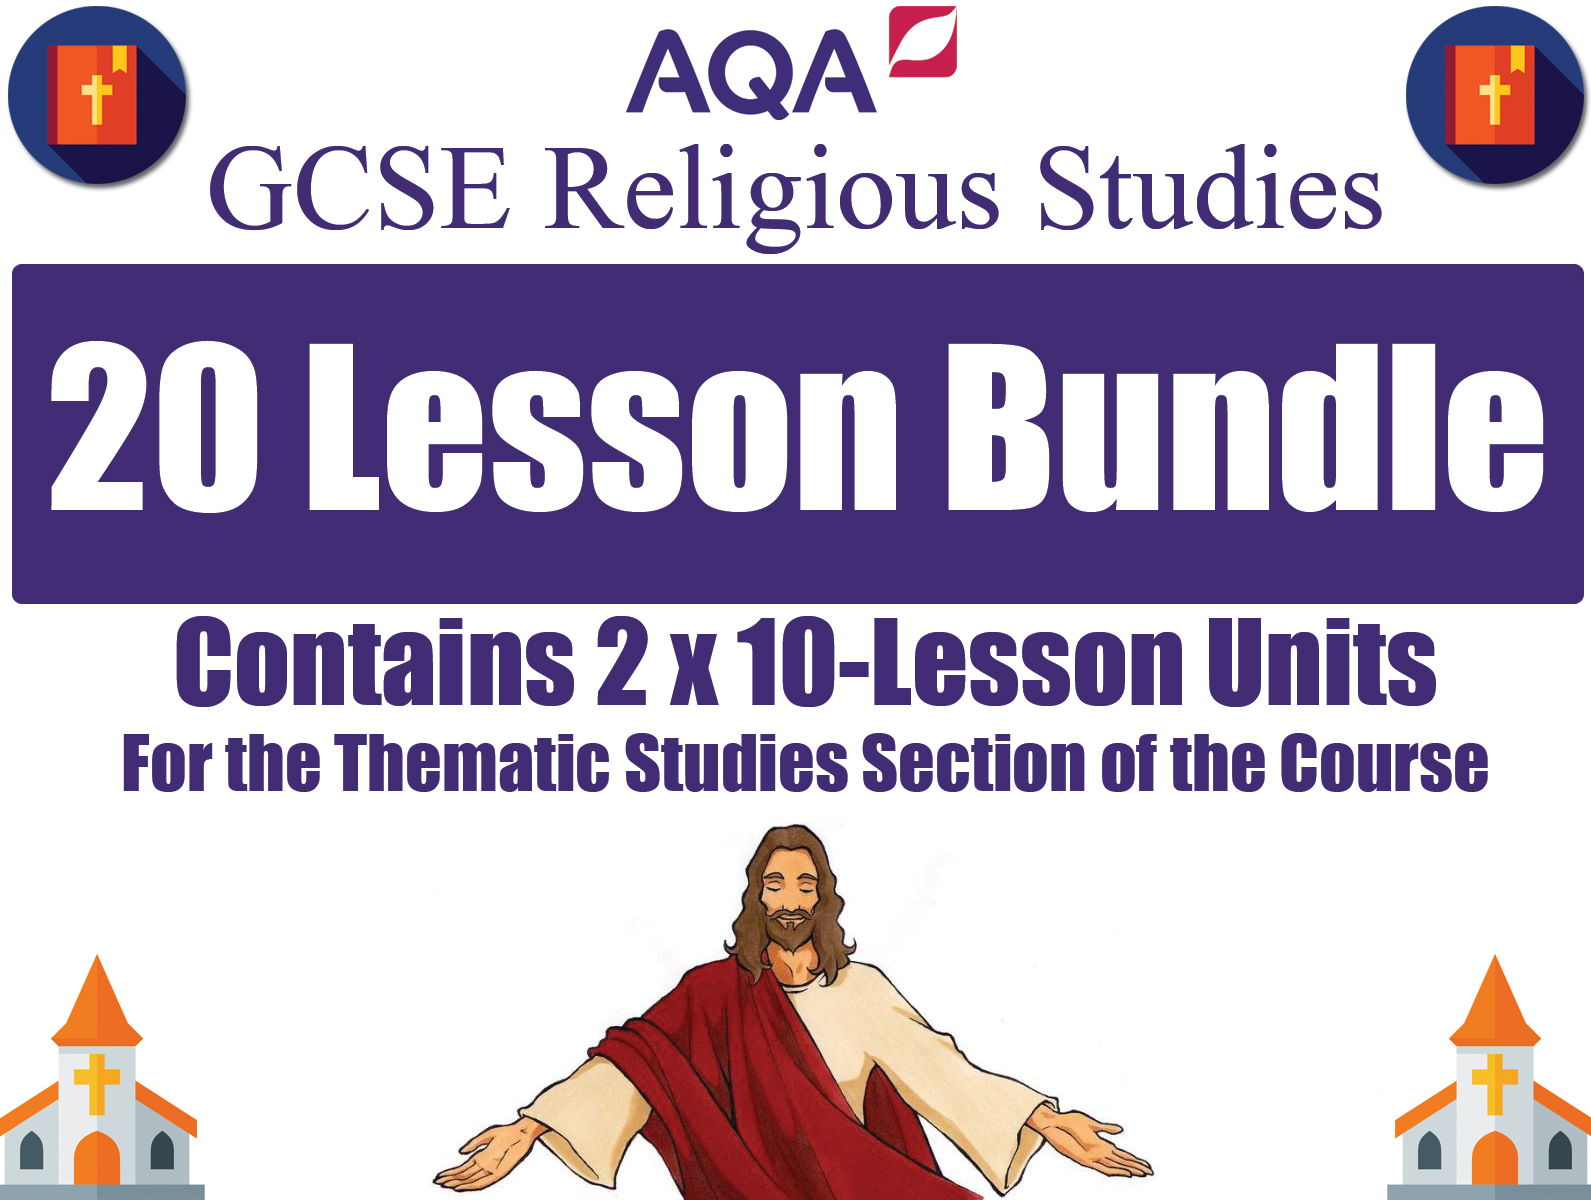 'The Existence of God & Revelation' + 'Religion, Crime & Punishment' (20 Lessons) [GCSE RS - AQA]